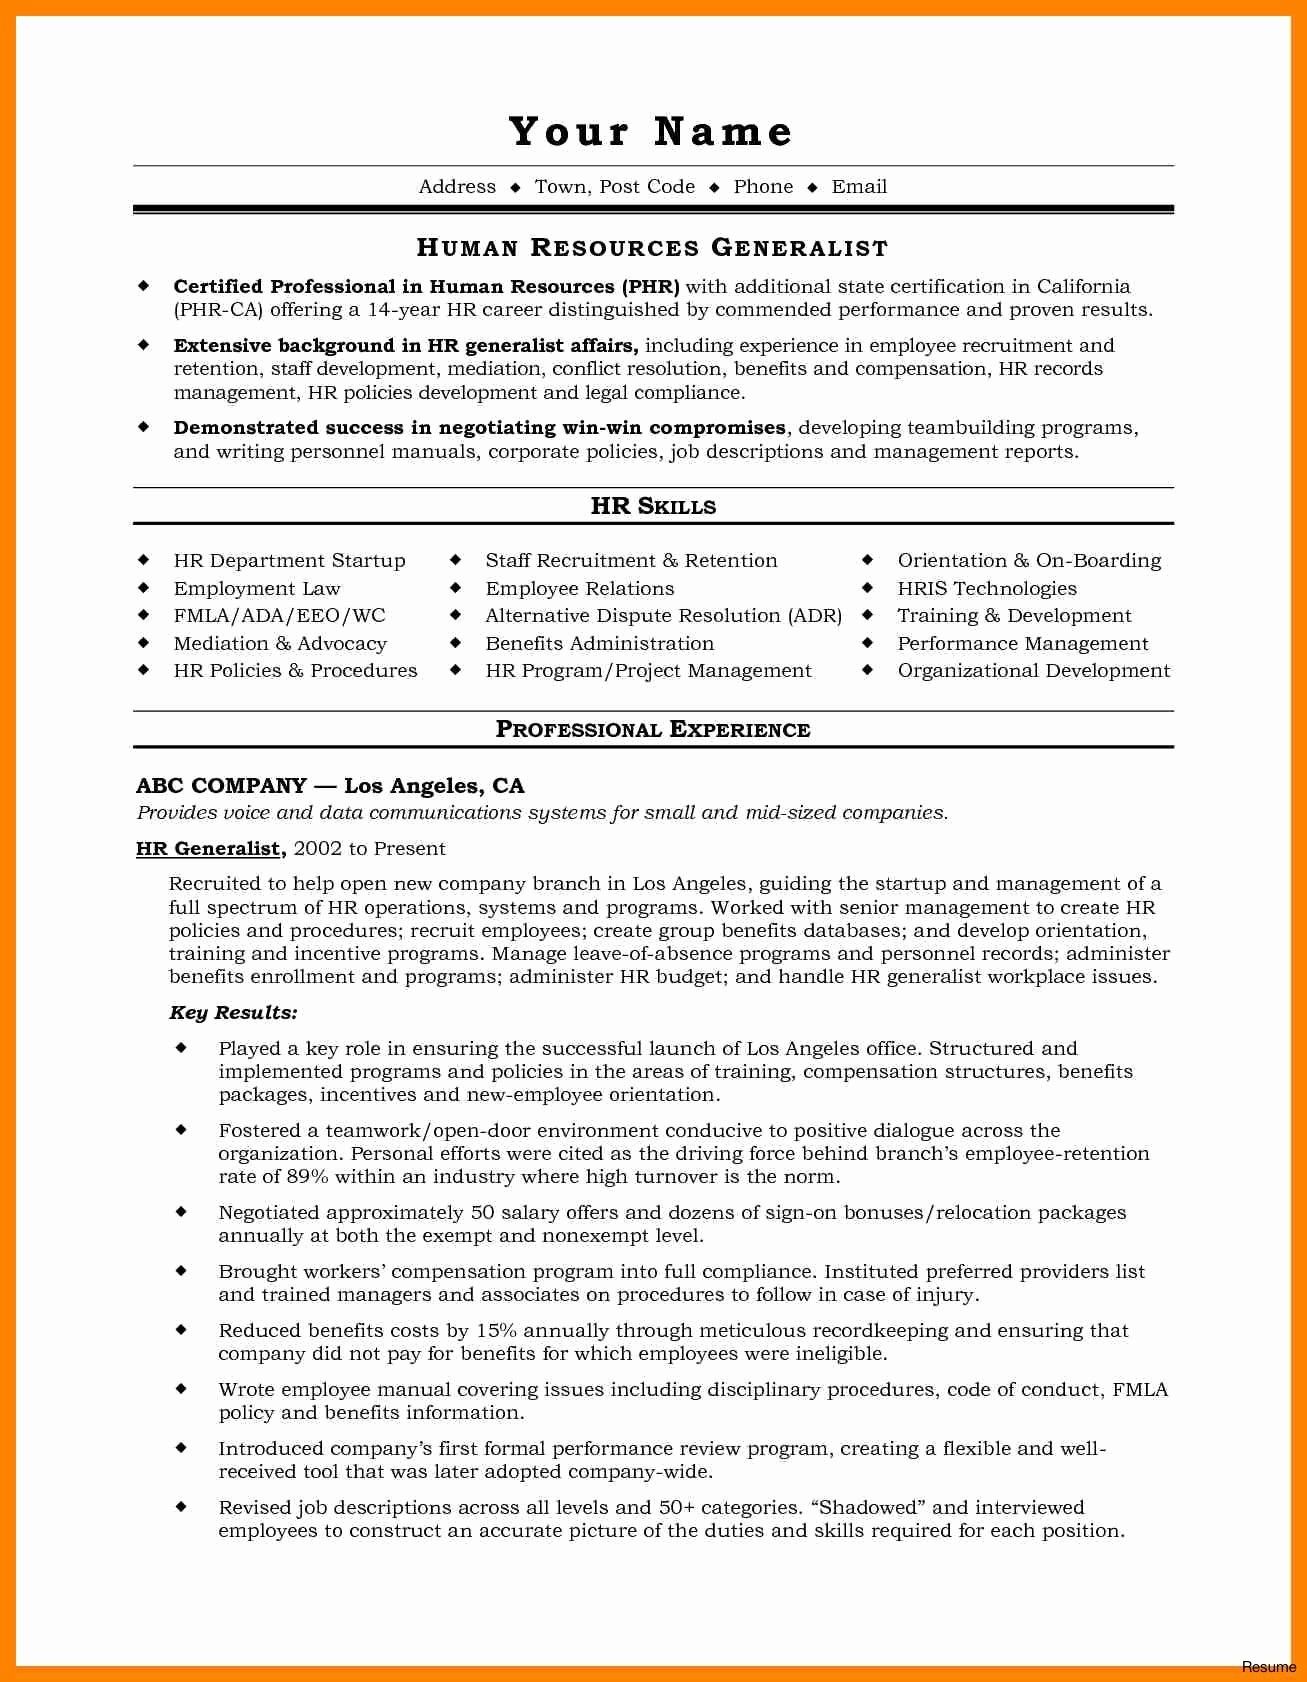 Dental assistant Resumes - Dental assistant Resume Template